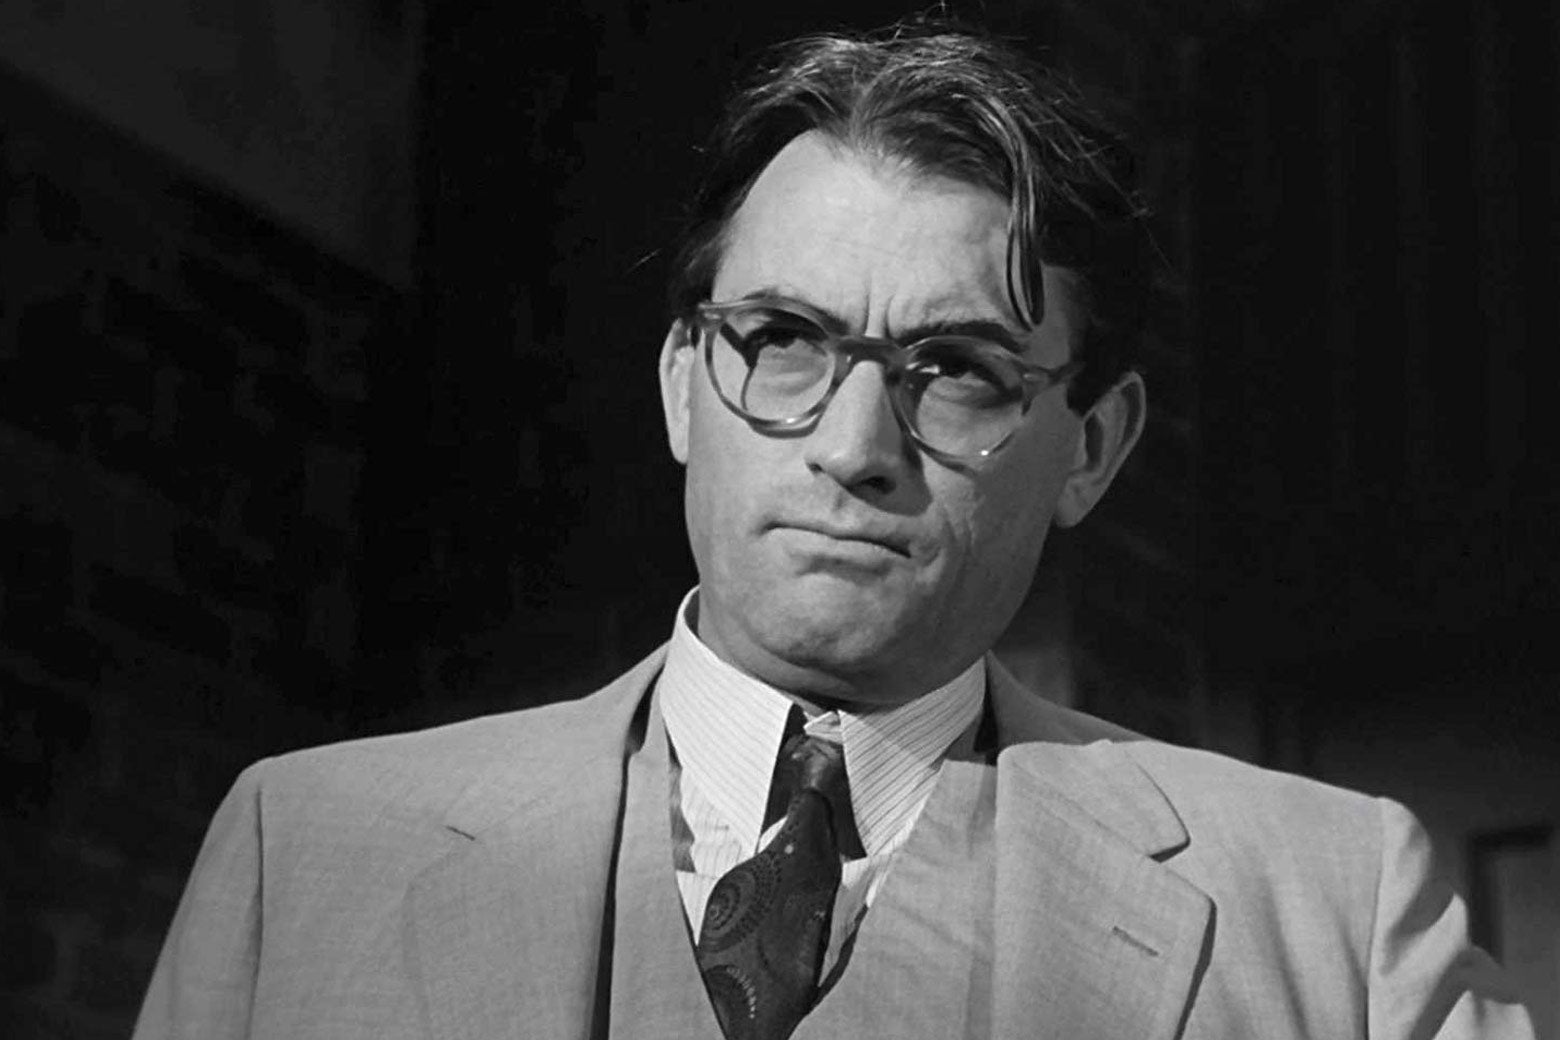 Gregory Peck as Atticus Finch in To Kill a Mockingbird.